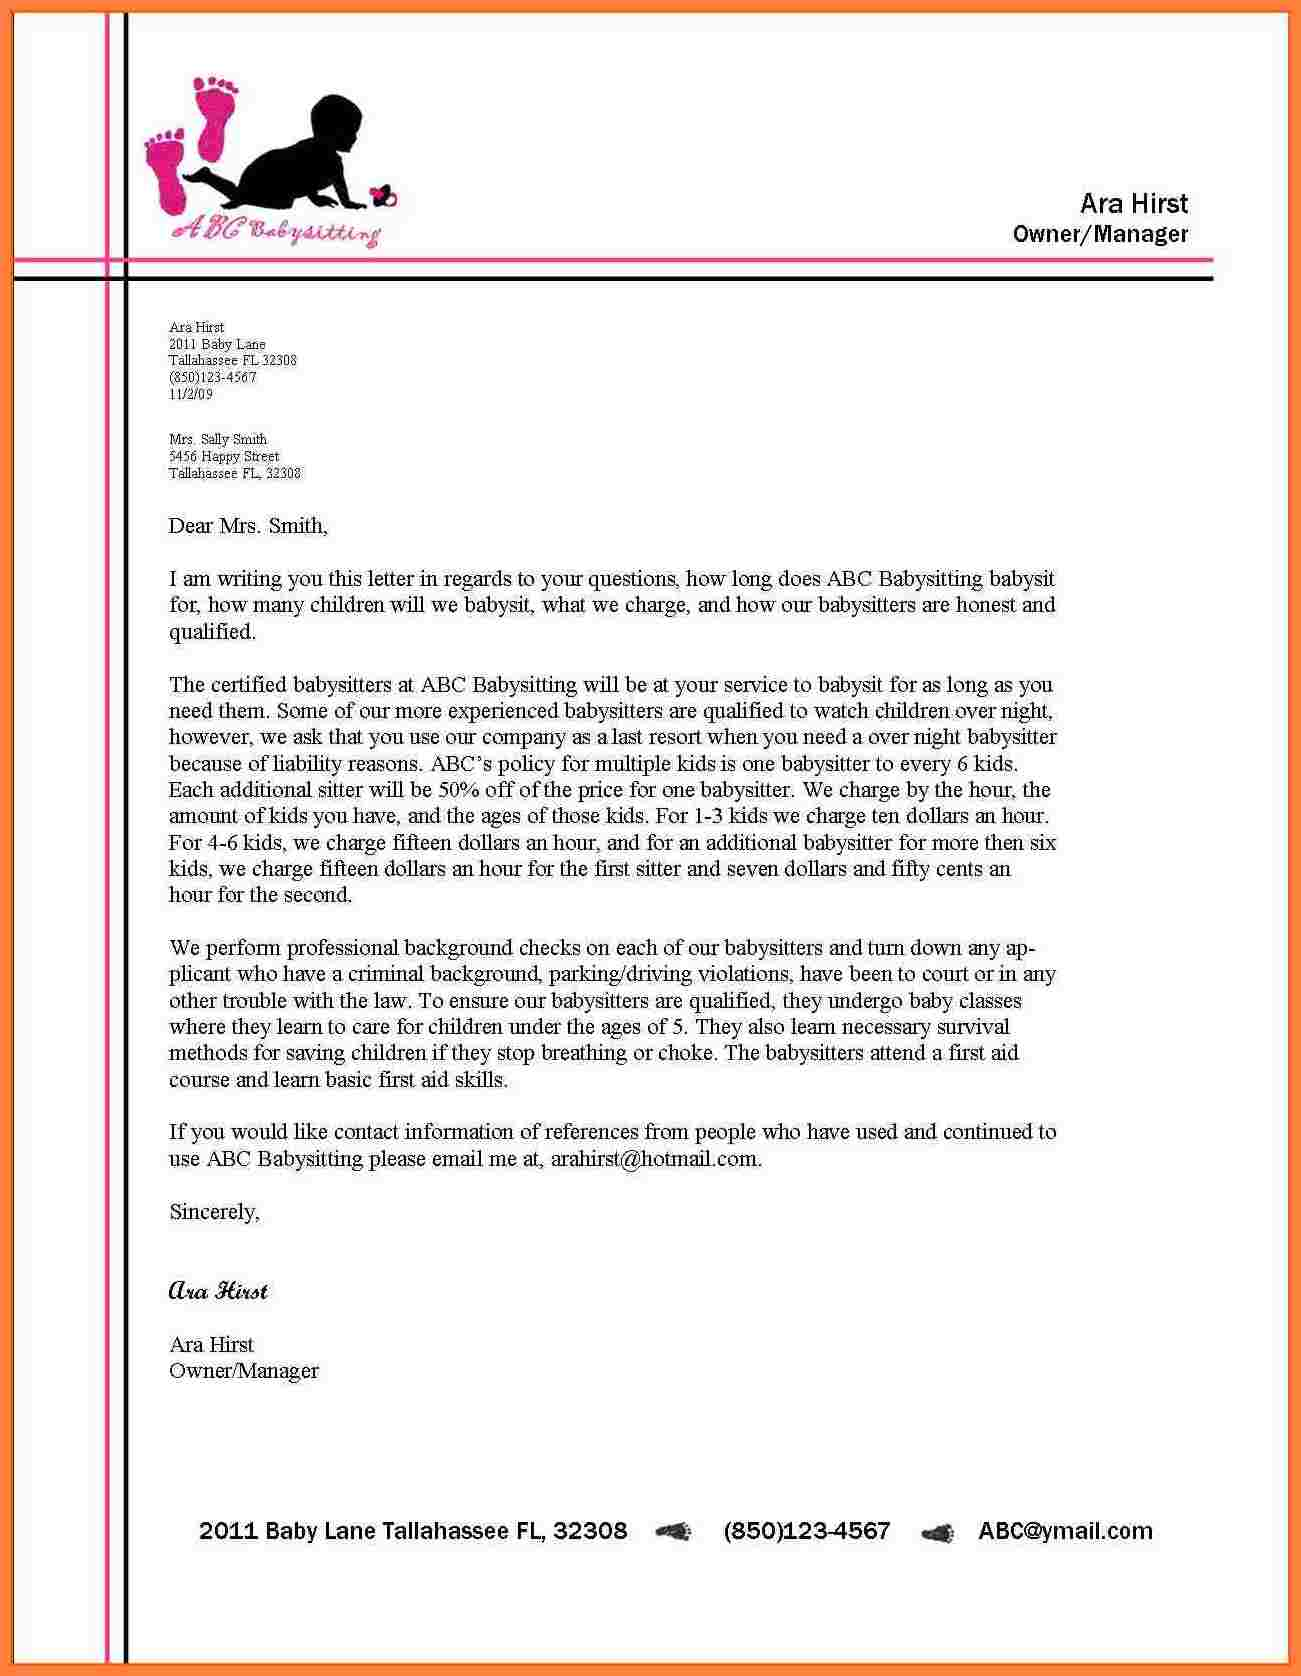 Example Of A Business Letter With Letterhead 1 – isipingo secondary